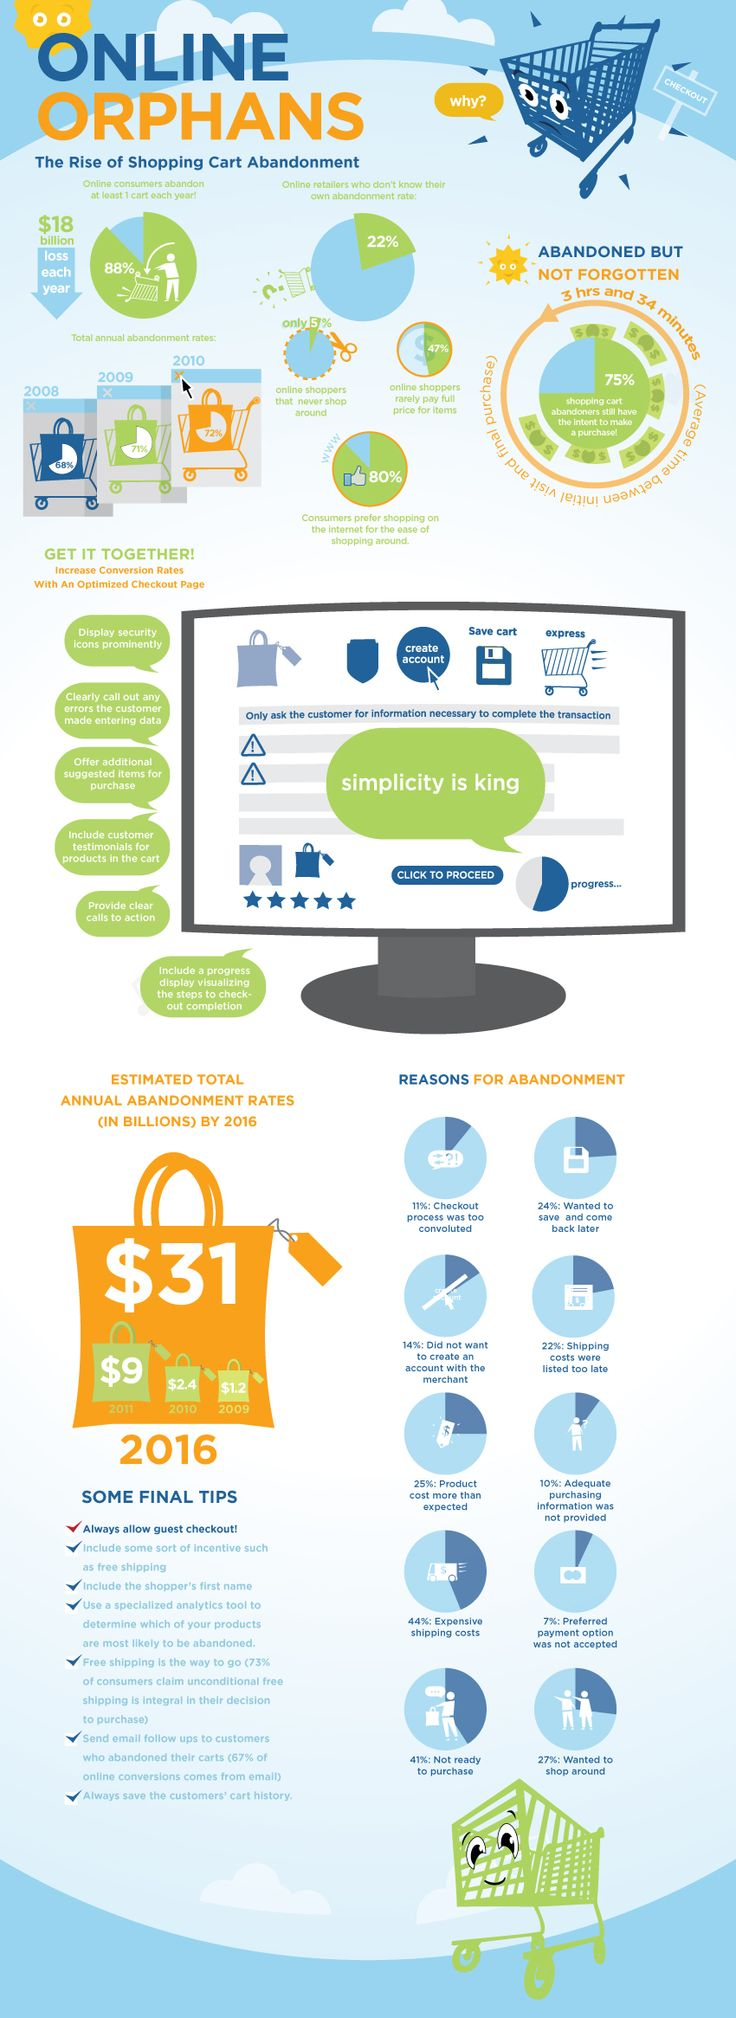 Online Orphans- why people abandon their online shopping cart